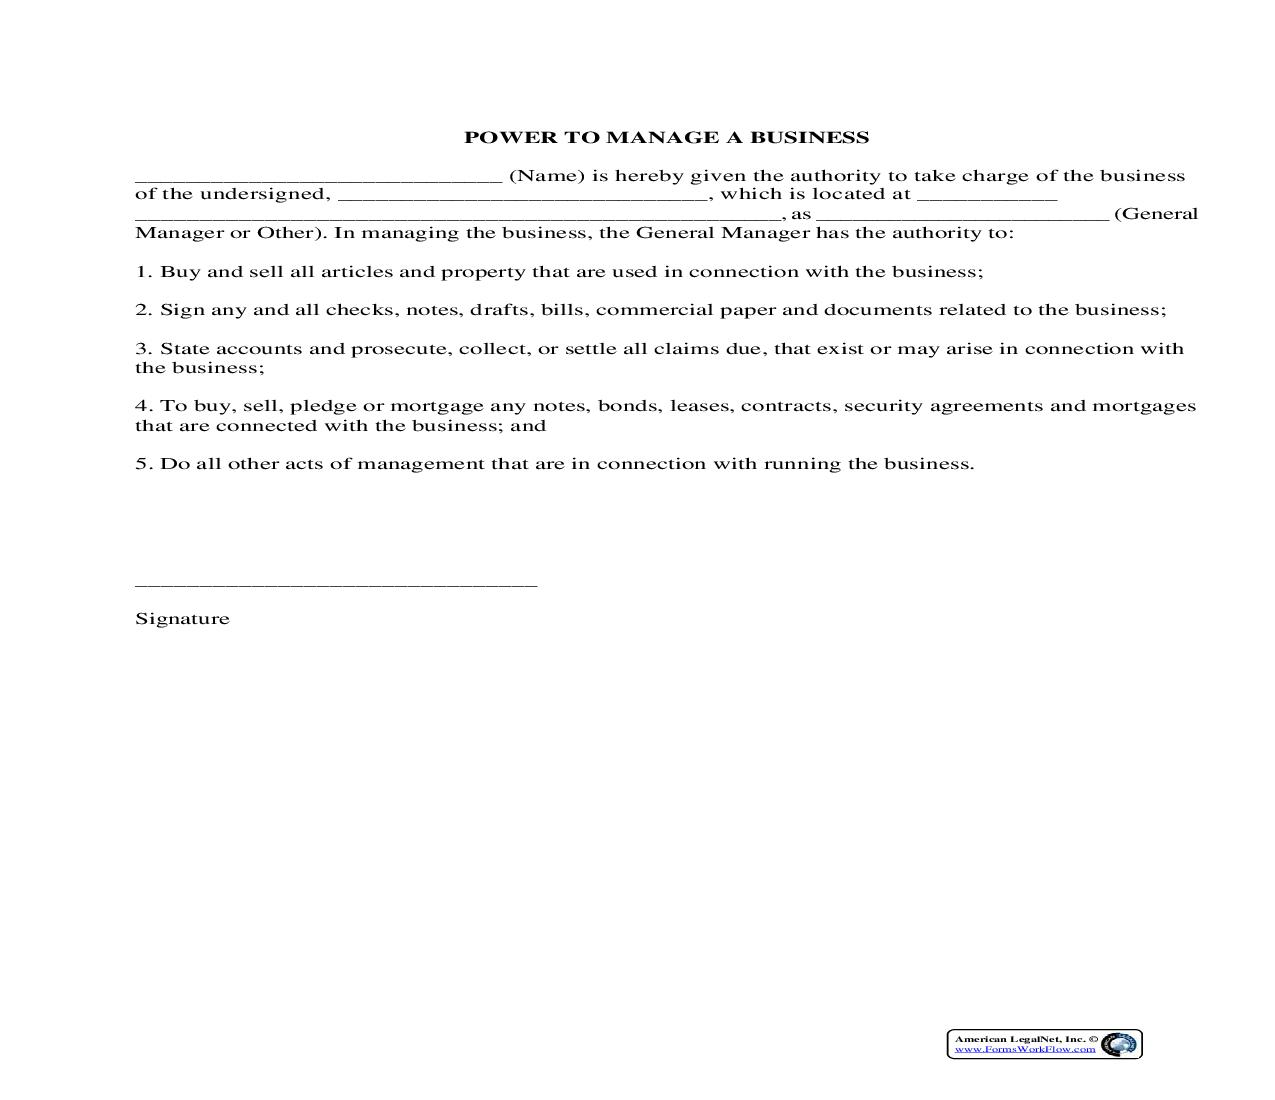 Power To Manage A Business {BUS-107} | Pdf Fpdf Docx | Legal Forms